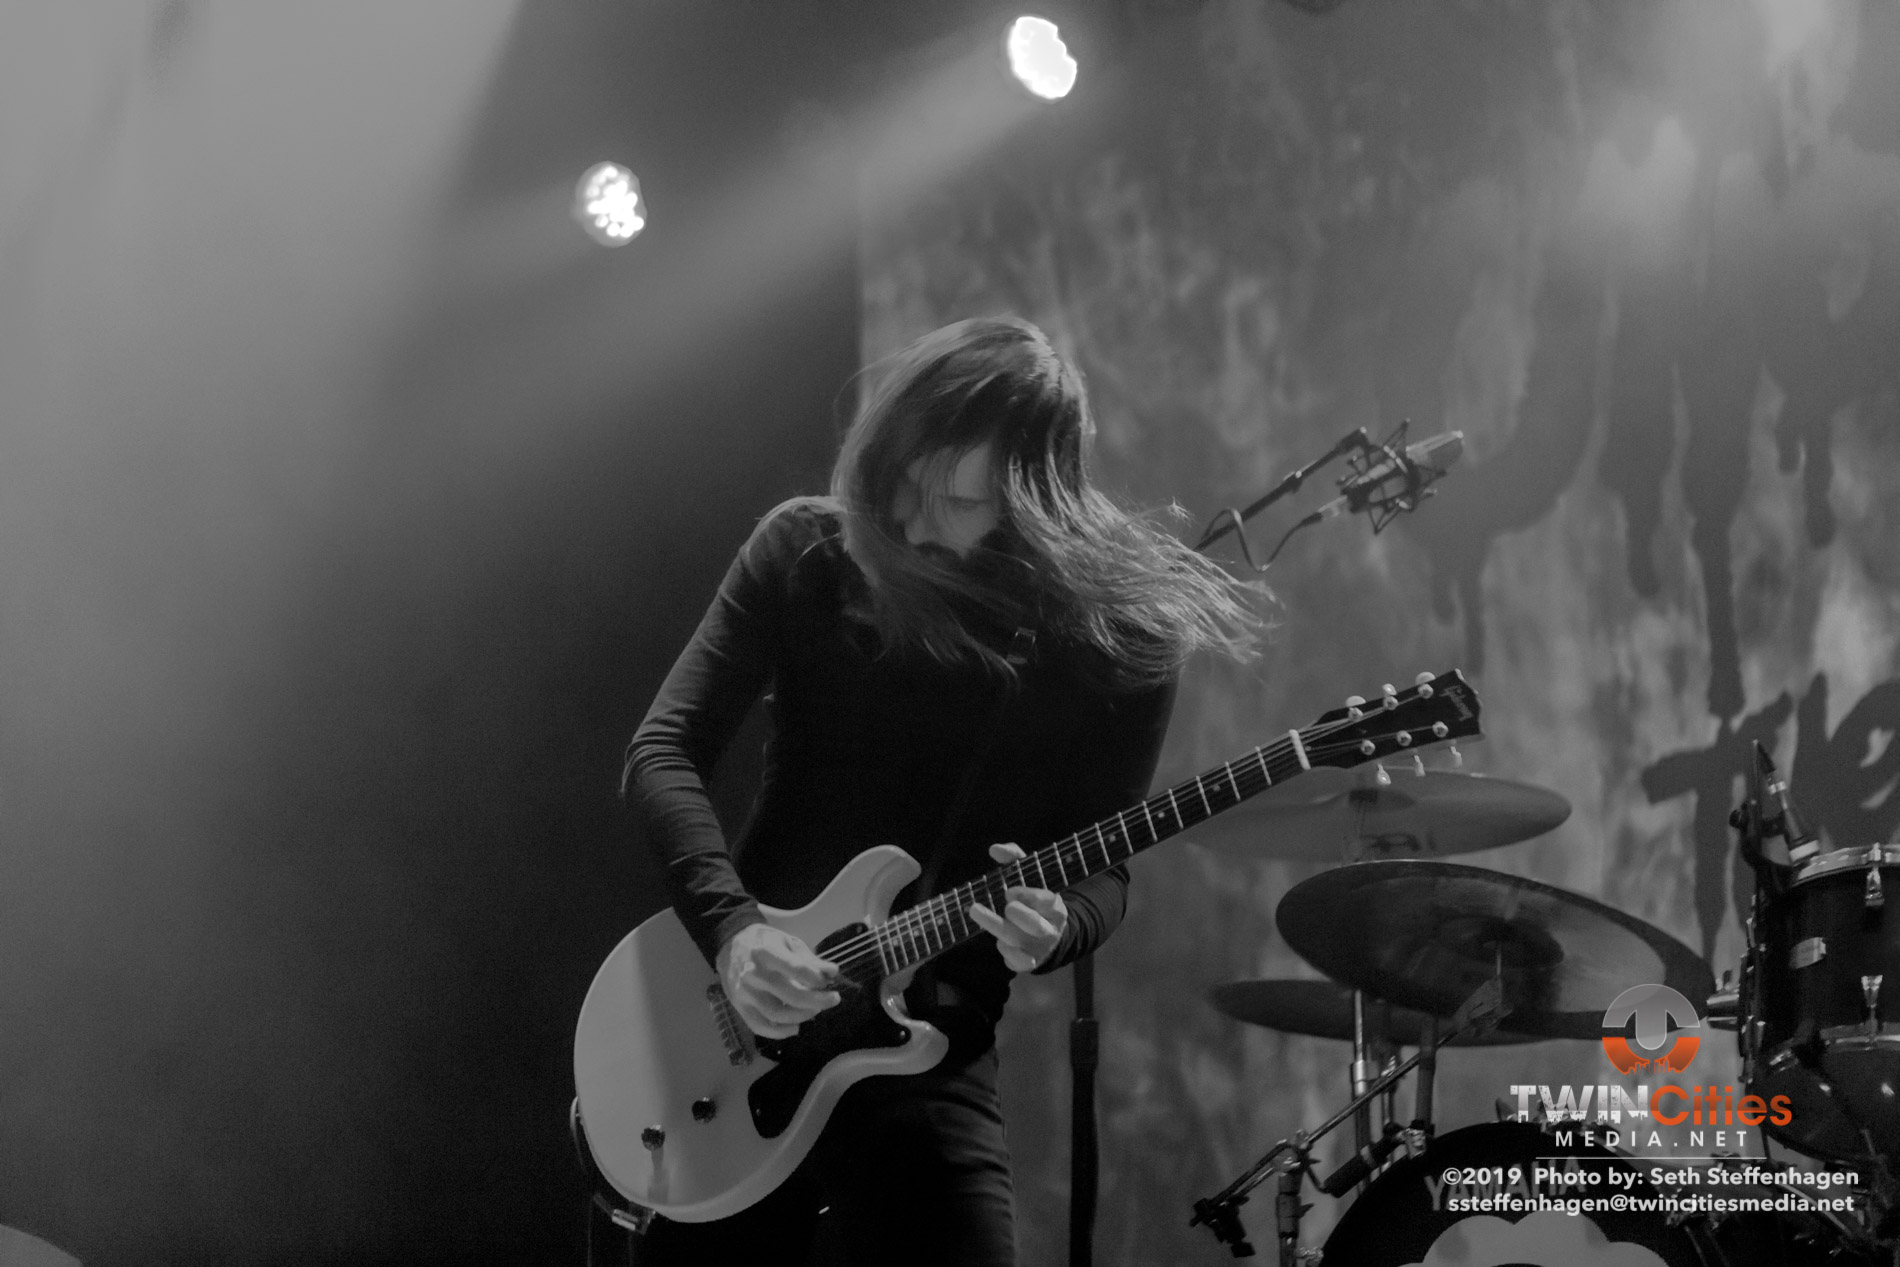 March 25, 2019 - Minneapolis, Minnesota, United States - Uncle Acid And The Deadbeats live in concert at First Avenue along with Graveyard and Demob Happy as the openers.  (Photo by Seth Steffenhagen/Steffenhagen Photography)